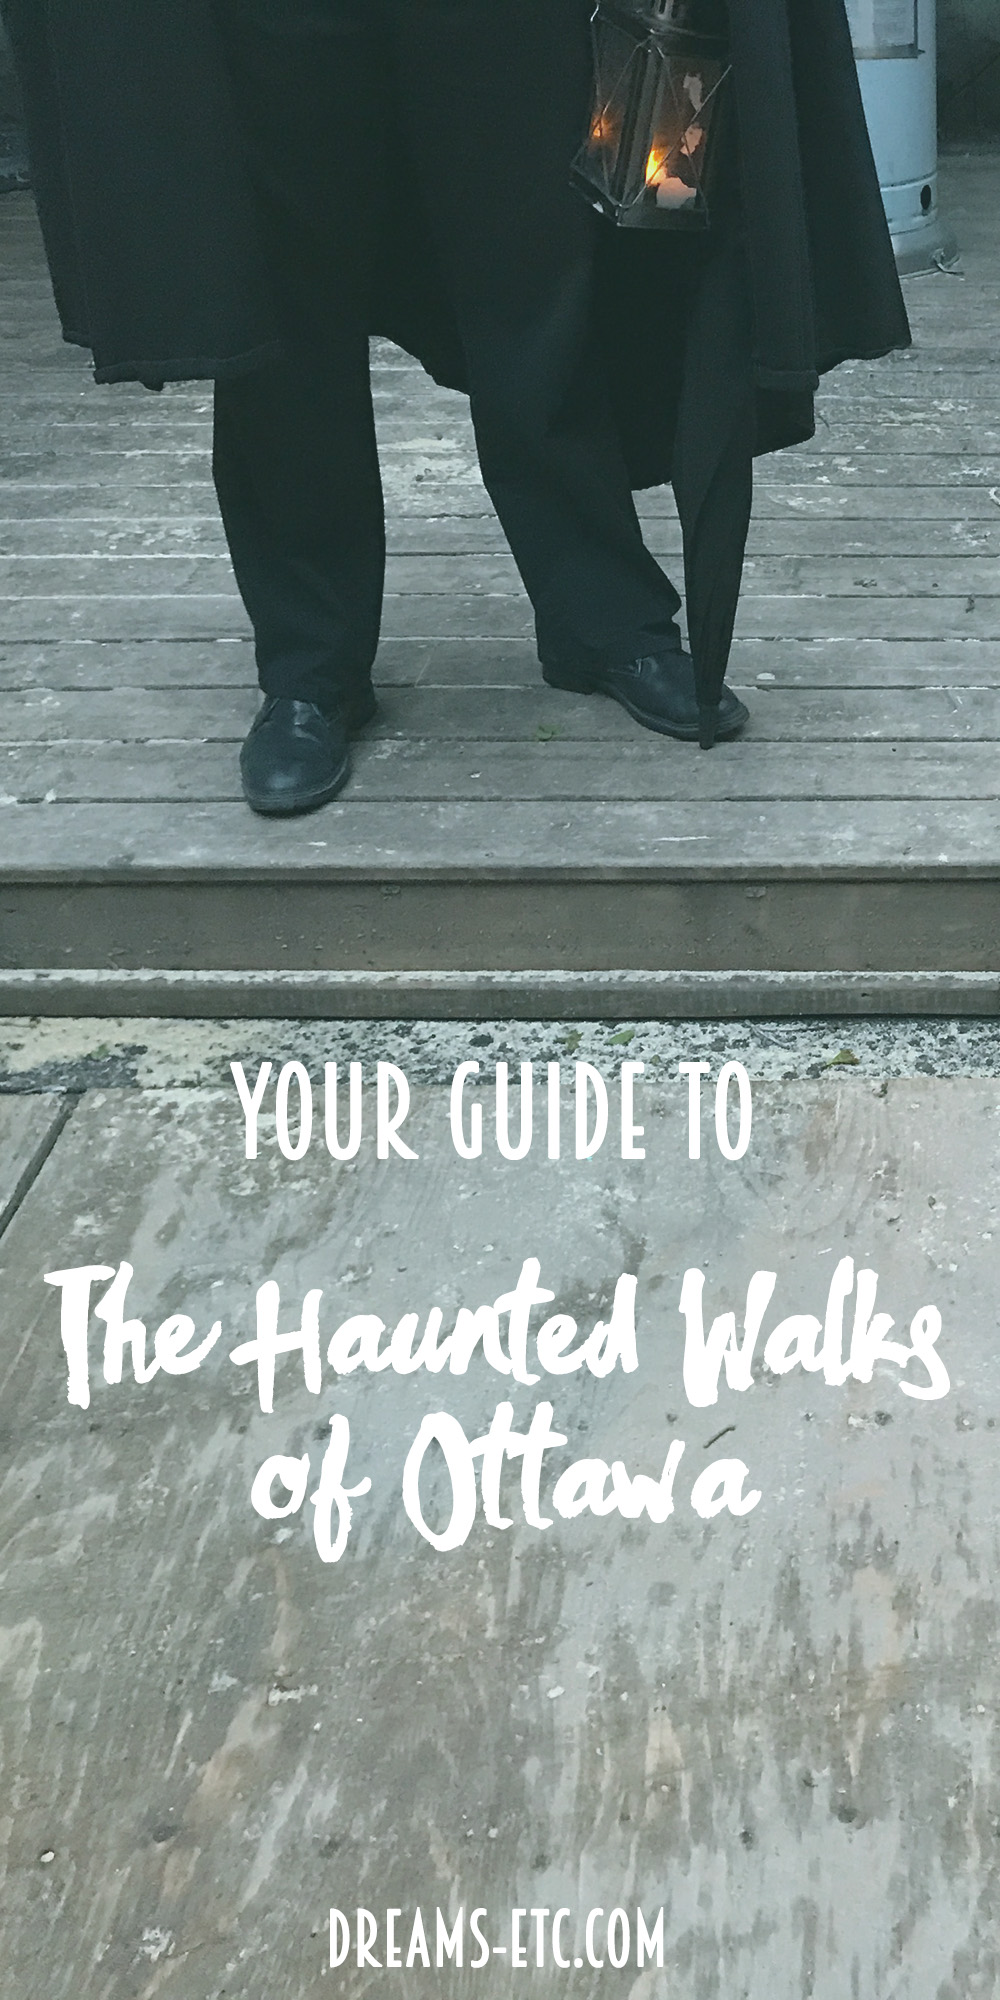 The Haunted Walk of Ottawa has multiple options to tour the city & learn with the history, some with a spooky twist! Here's a guide to three of the tours! // dreams-etc.com